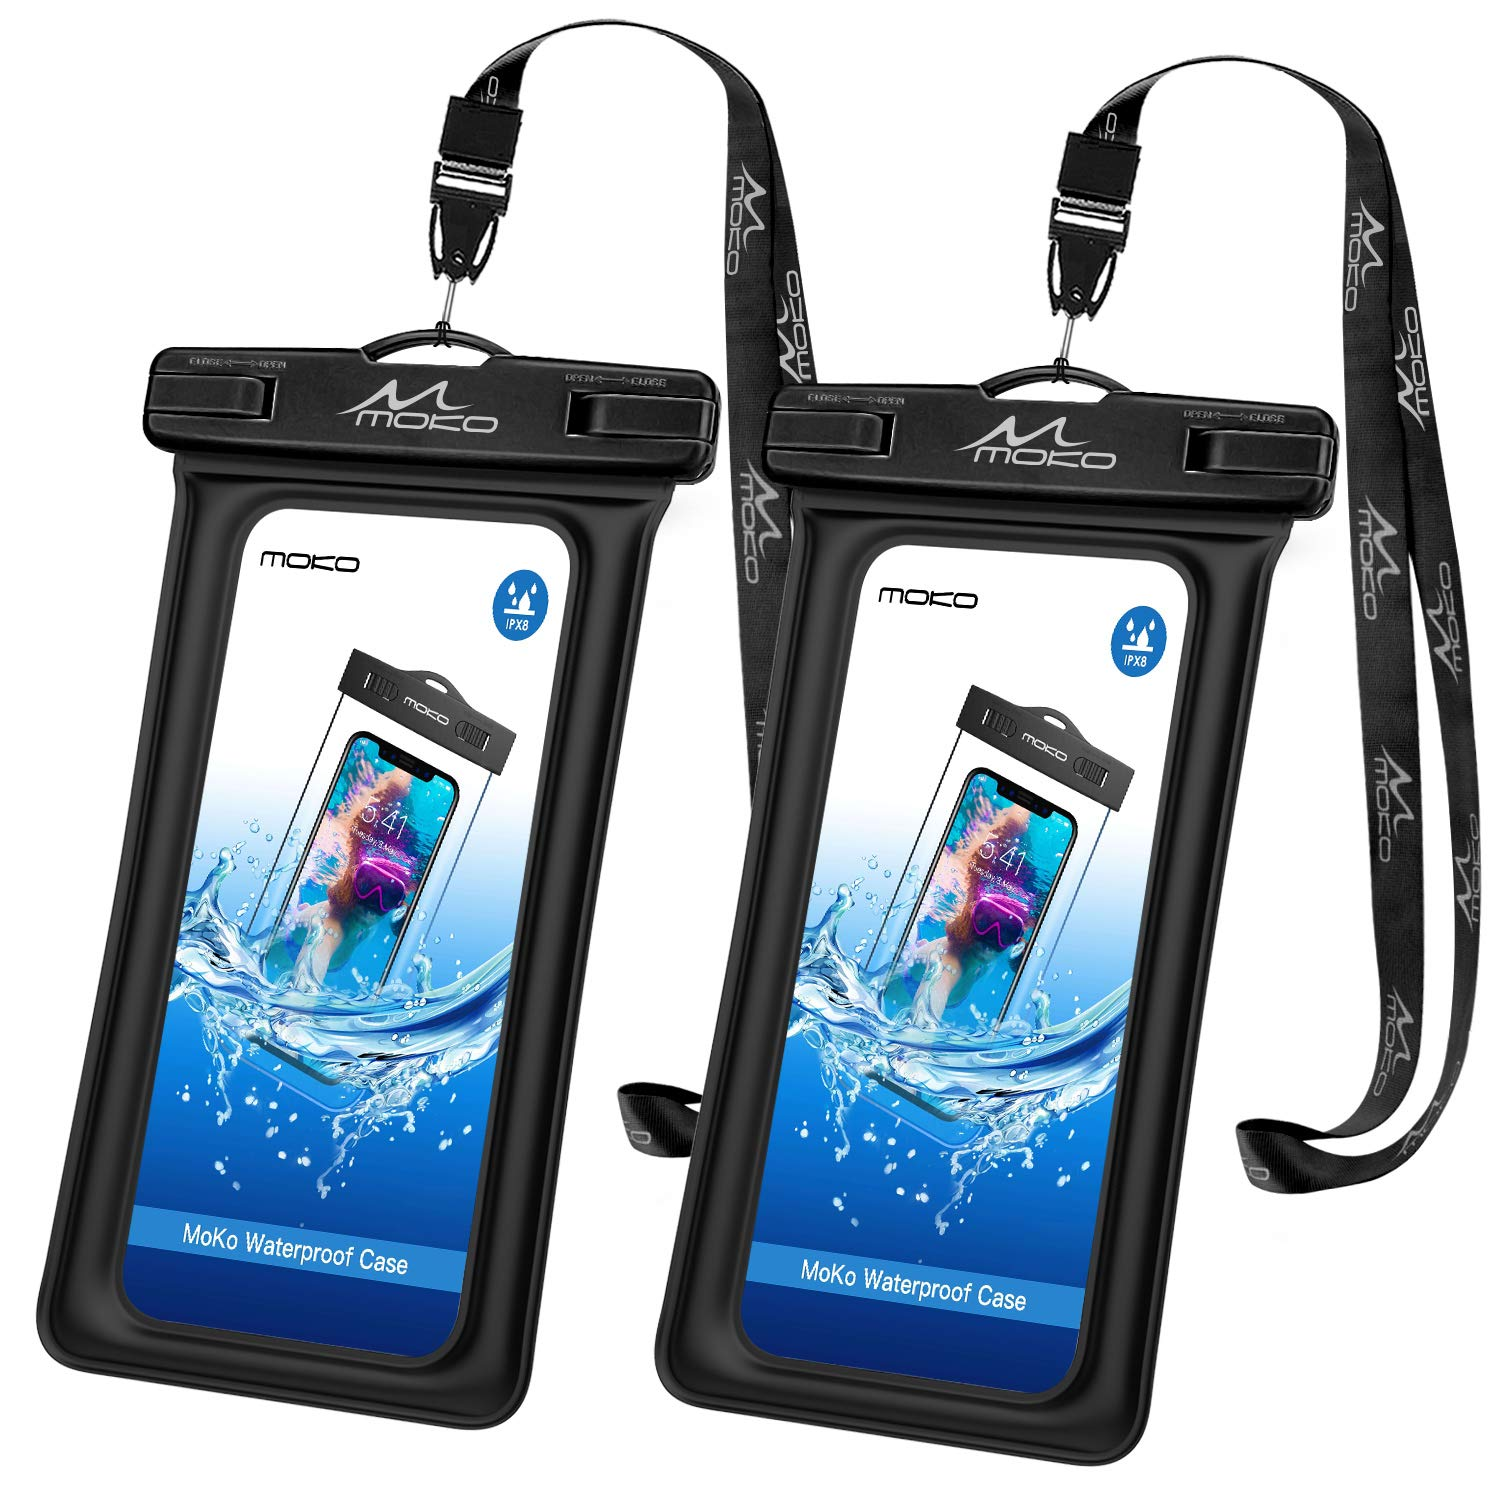 Waterproof Floating Cell Phone Bag, MoKo Floatable Phone Case Pouch Dry Bag with Lanyard Compatible with iPhone X/Xs/Xr/Xs Max, 8/7/6s Plus, Samsung Galaxy Note 9/8, S9/S8 Plus, 2 Pack, Black + Black